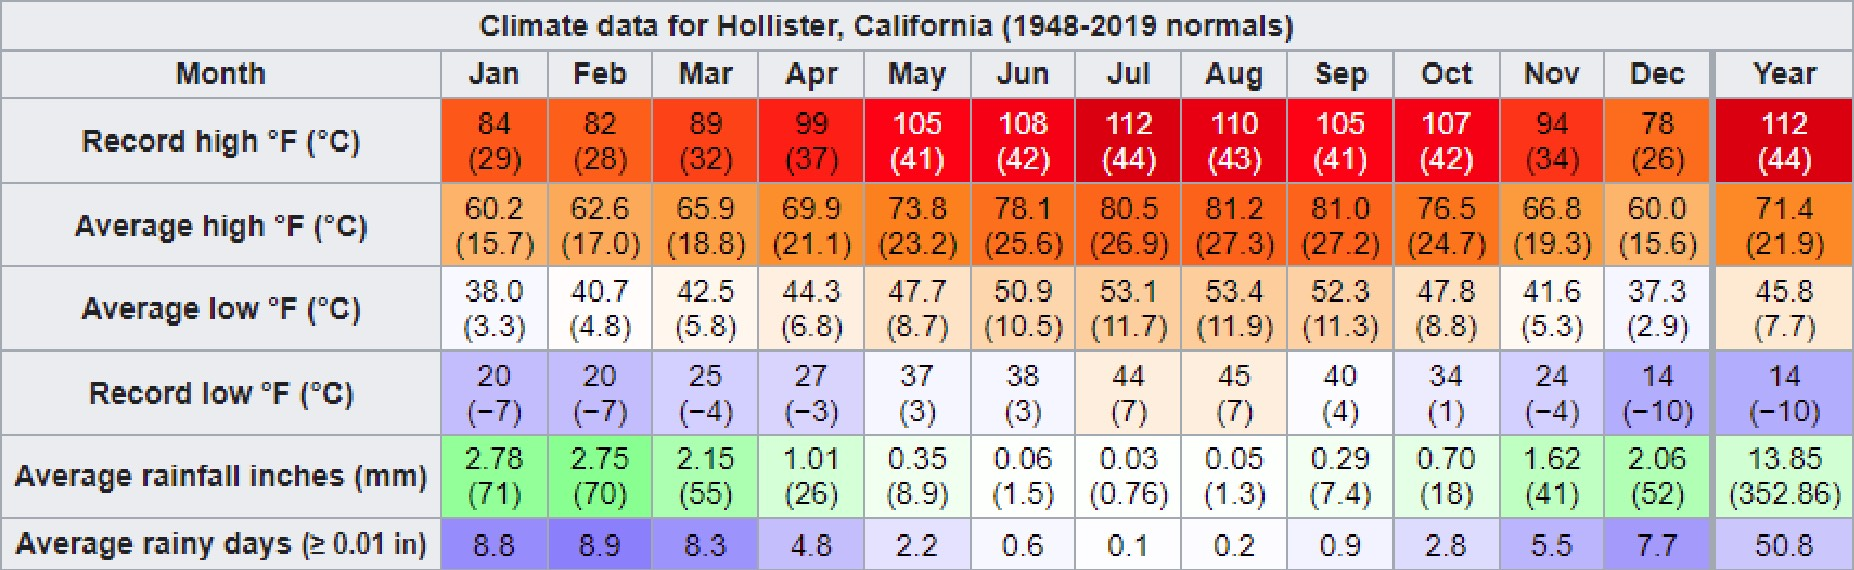 Climate Data for Hollister, CA